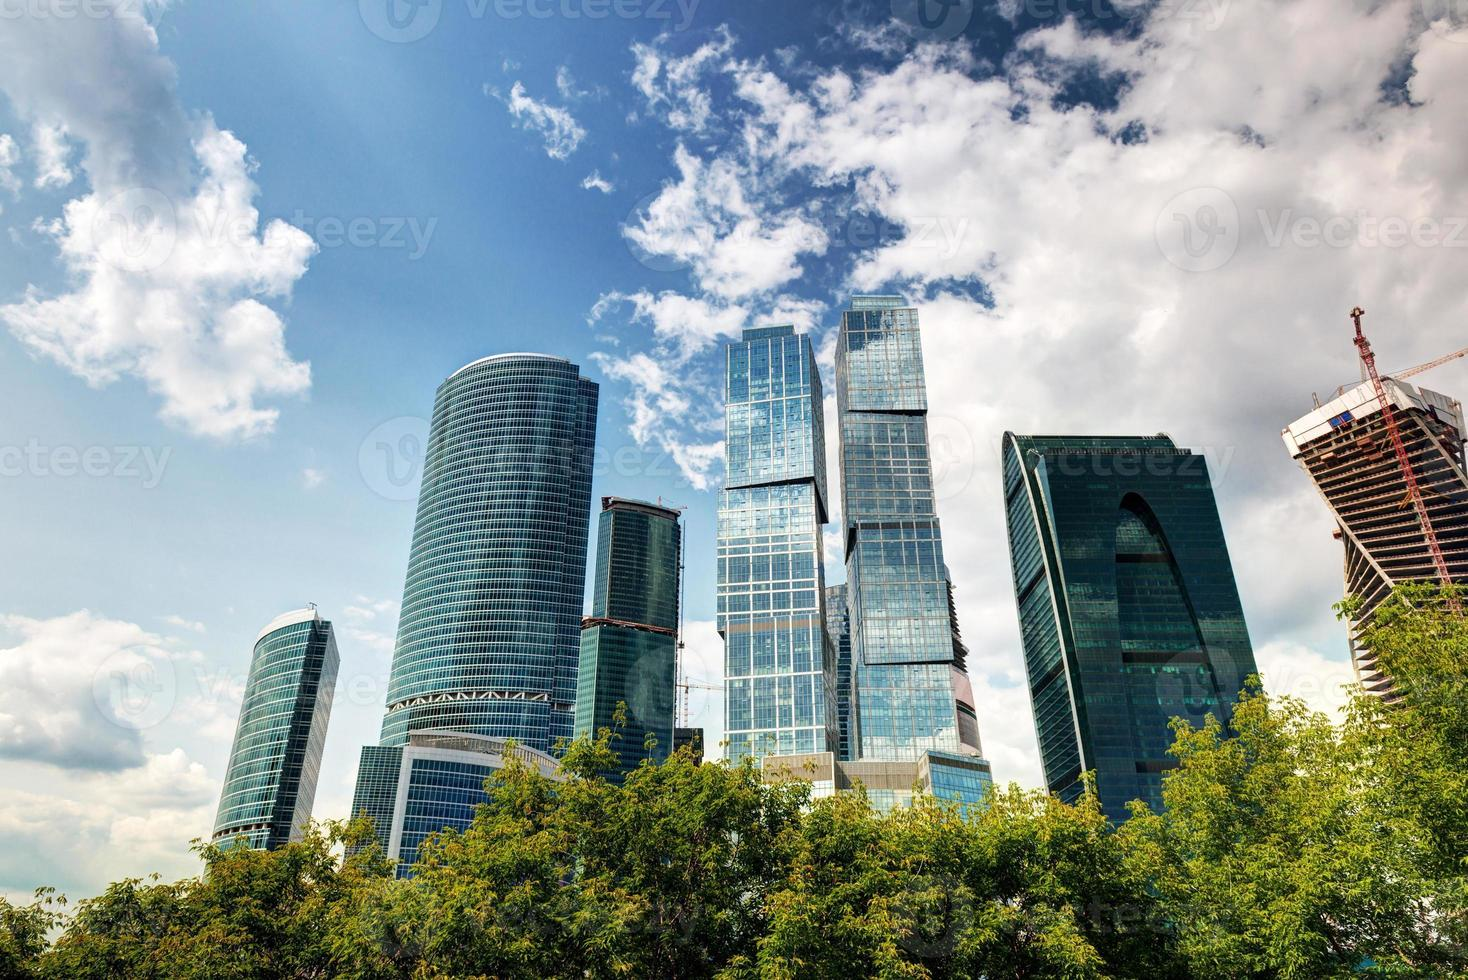 Moscow-city (Moscow International Business Center) photo